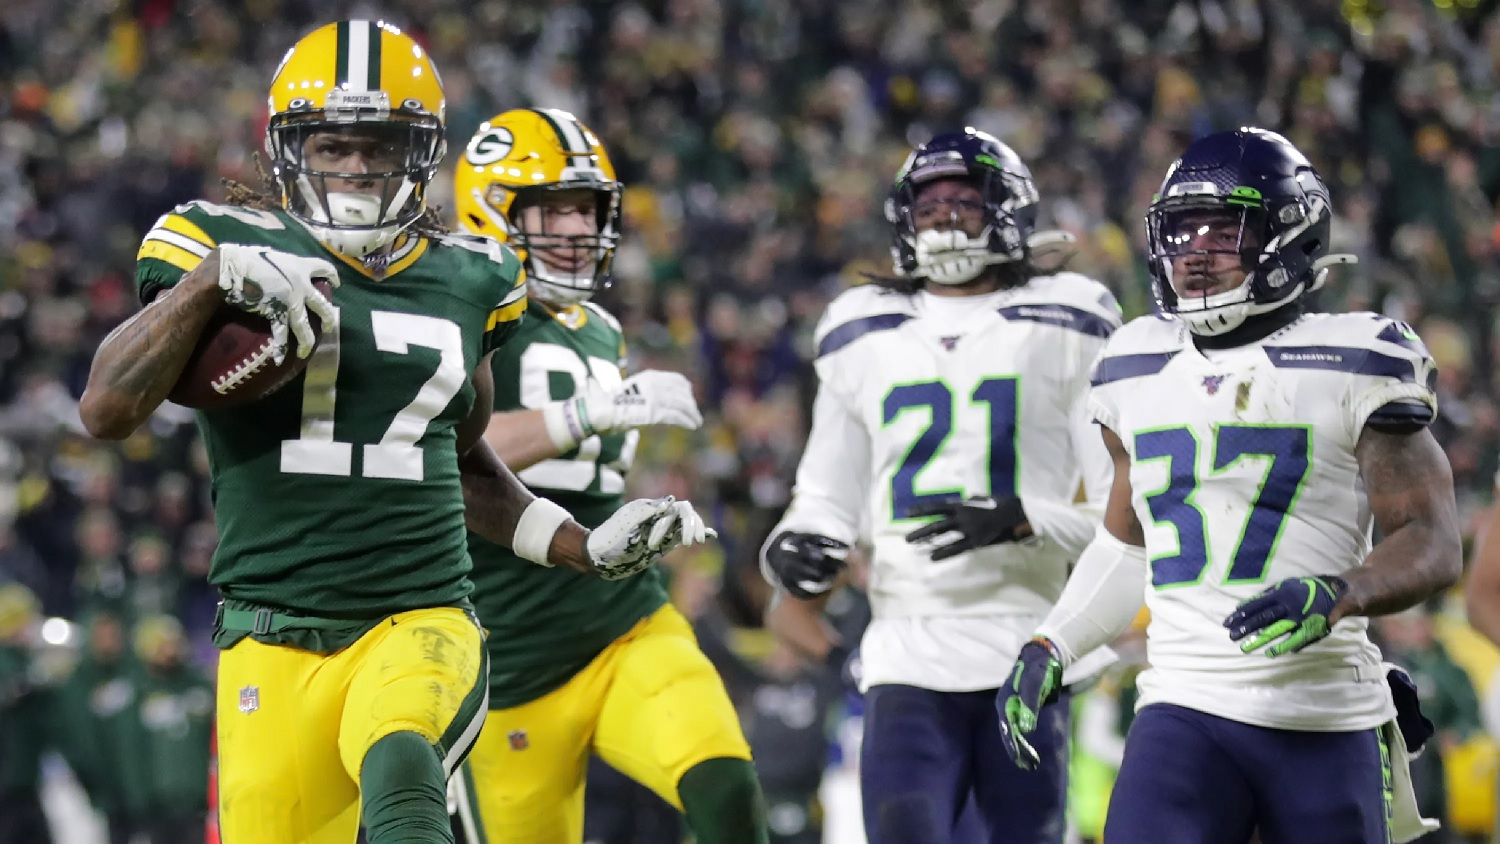 Davante Adams, Green Bay Packers vs. Seahawks, 2019